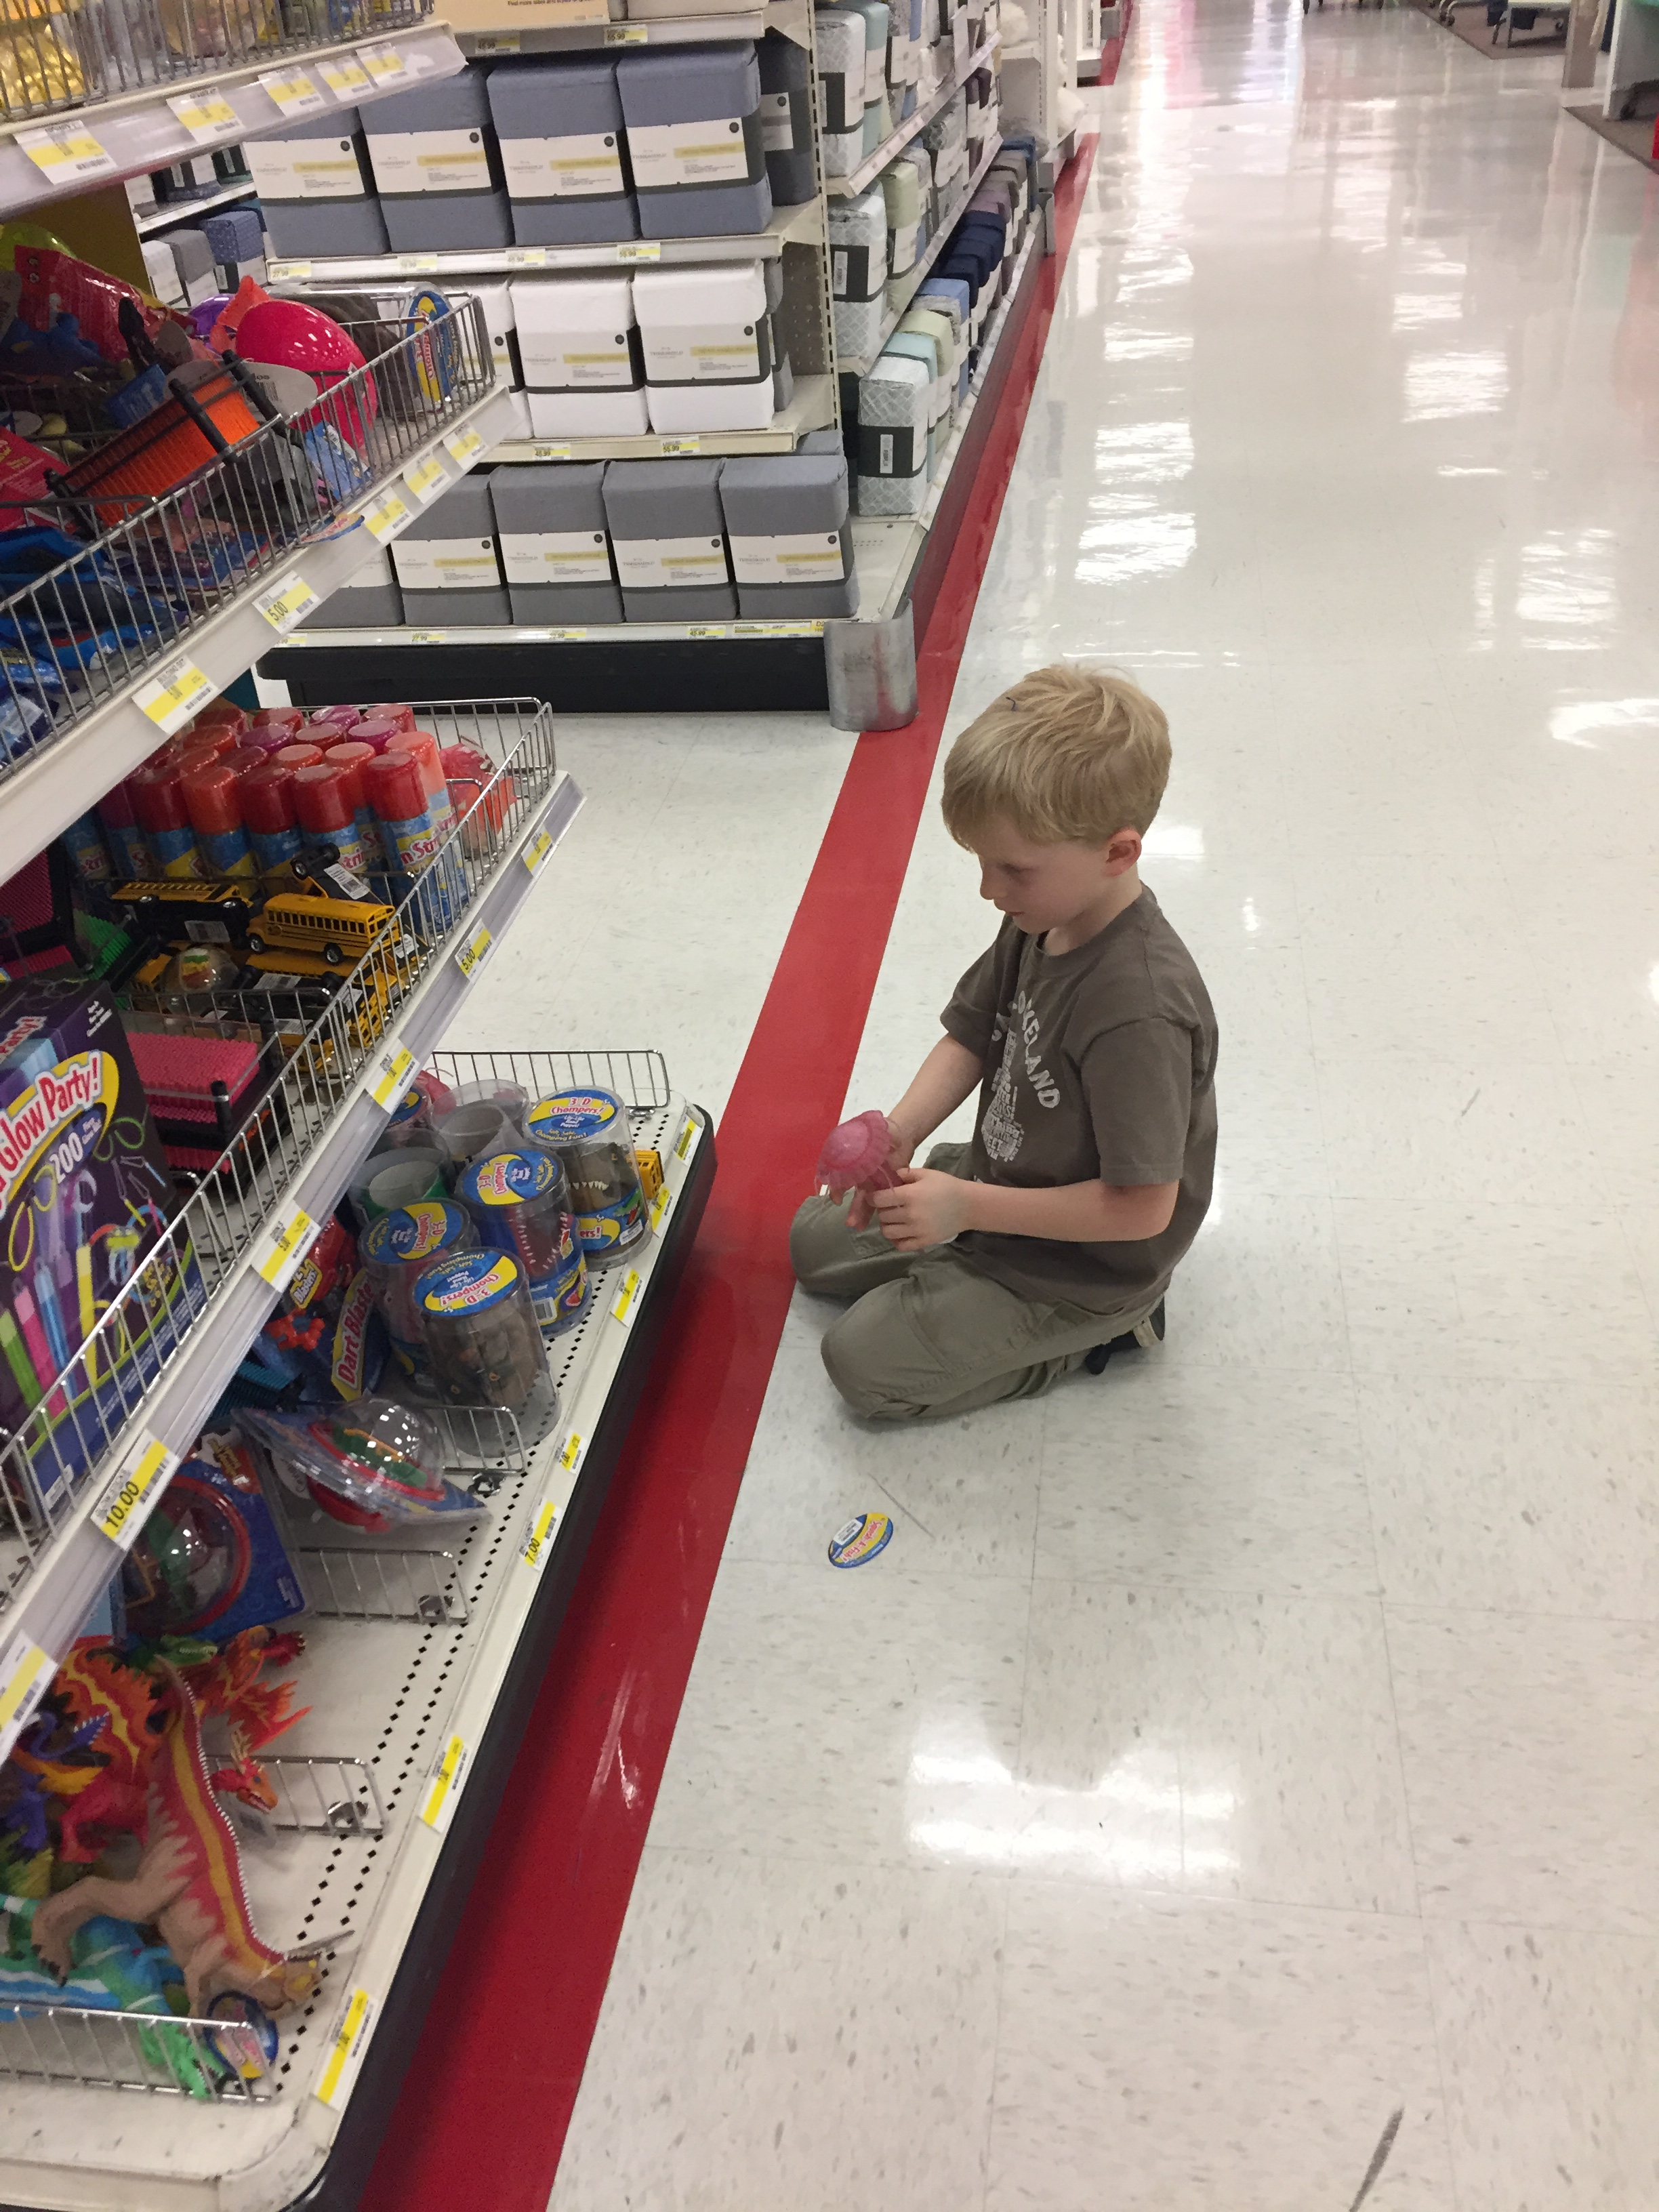 h-toy-aisle-target-12-16